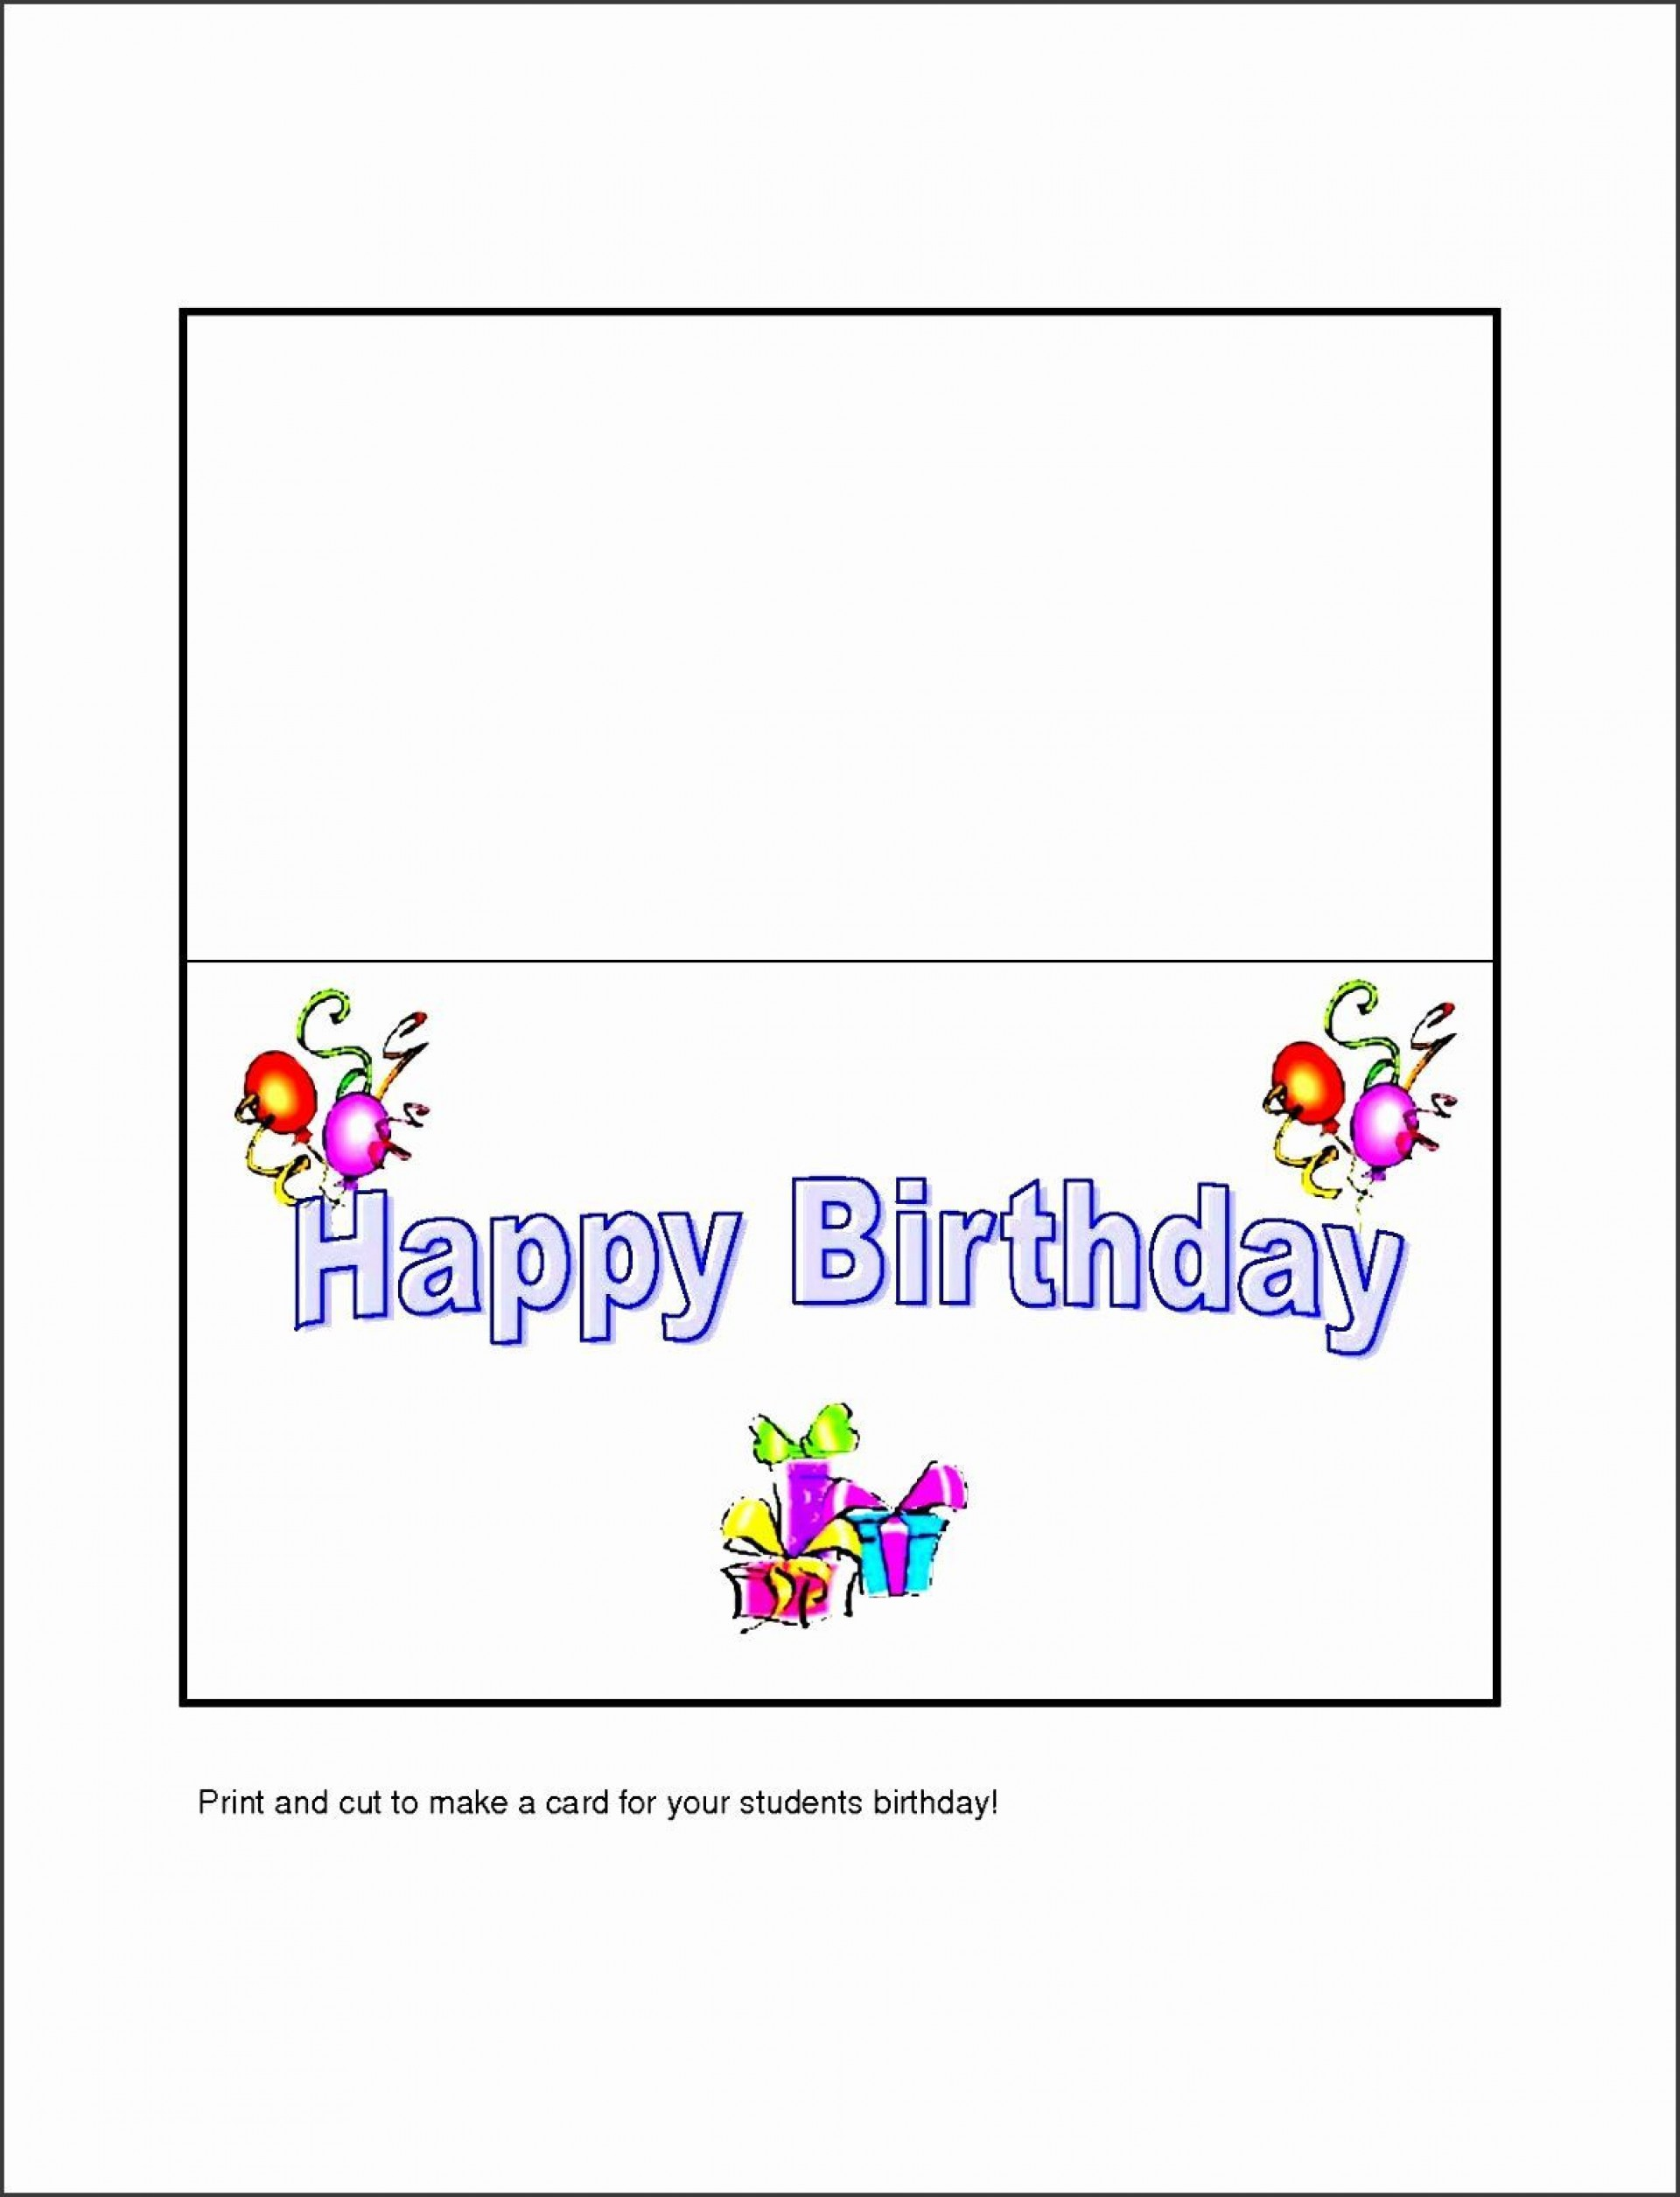 004 Singular Free Printable Card Template Word Idea  Busines Thank You Blank For1920